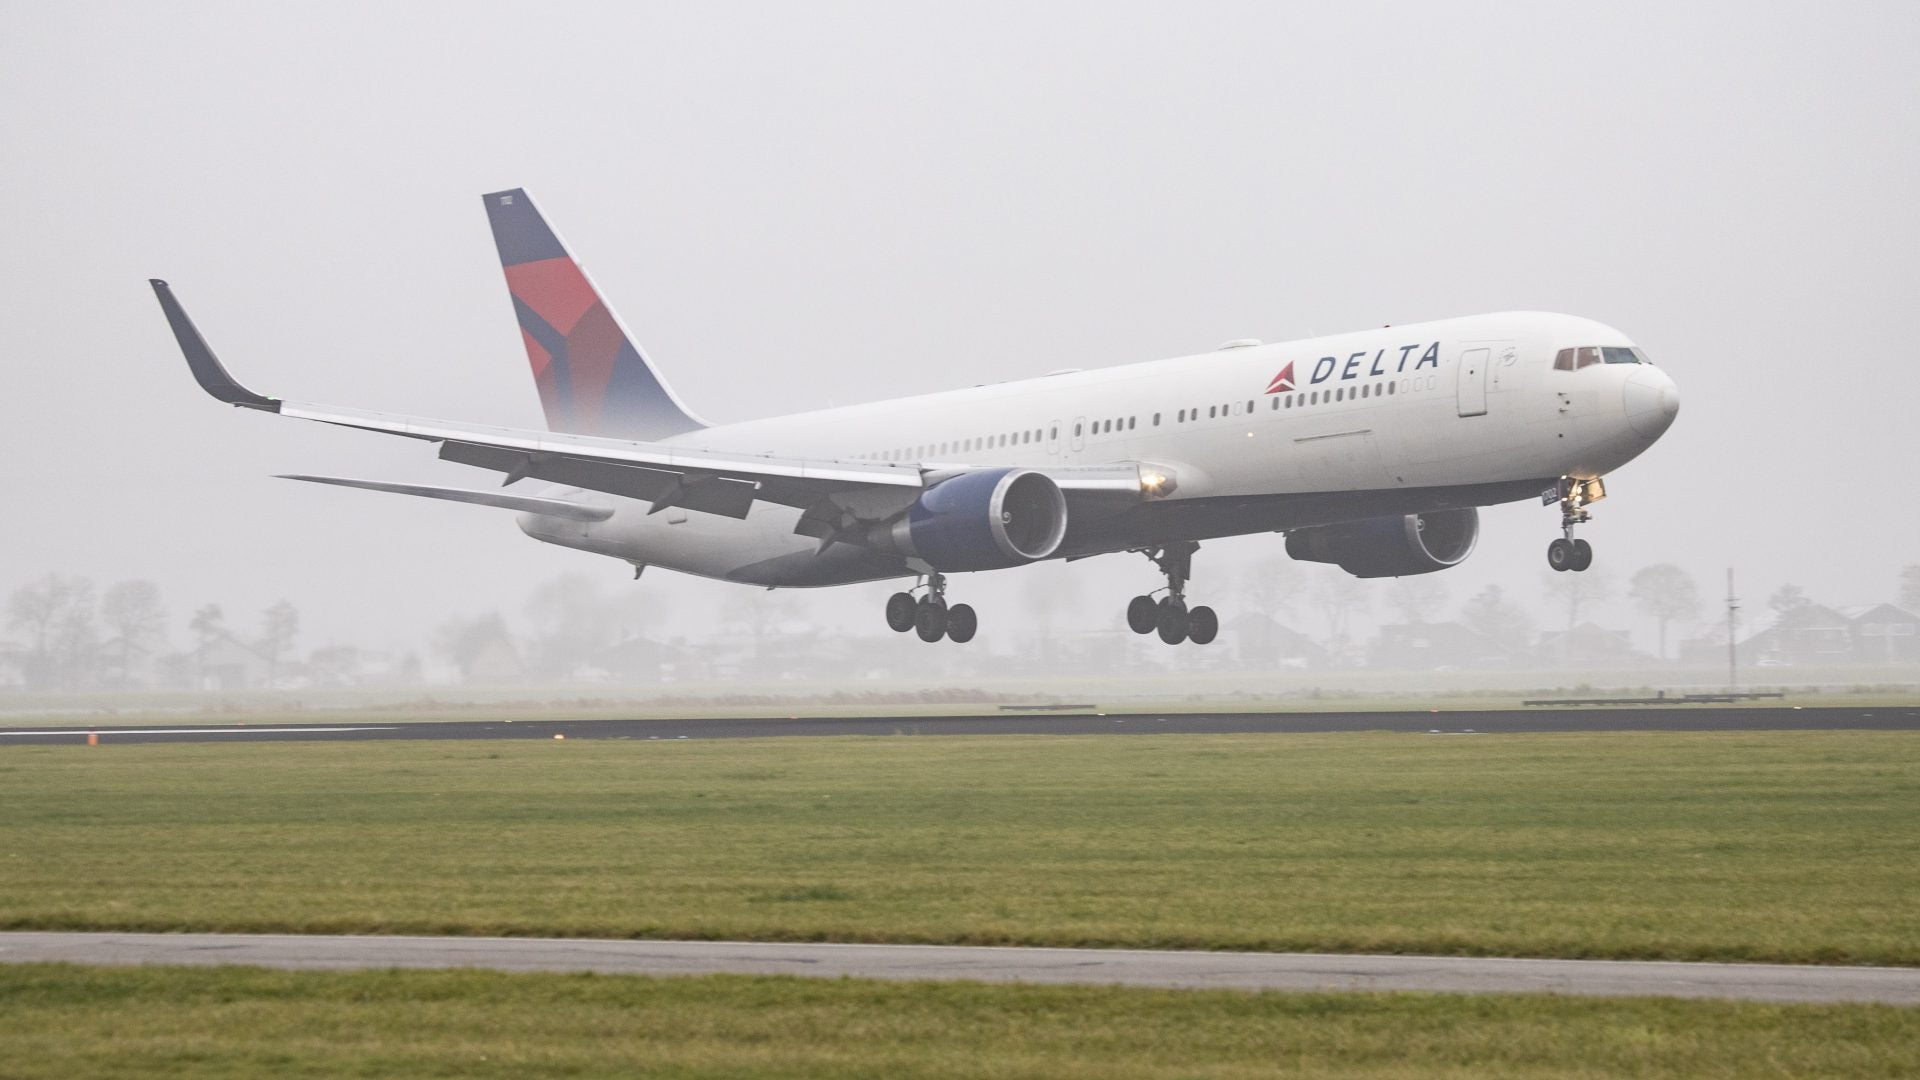 Delta, JetBlue Waive Change Fees For Dominican Republic Flights Amidst Tourist Deaths